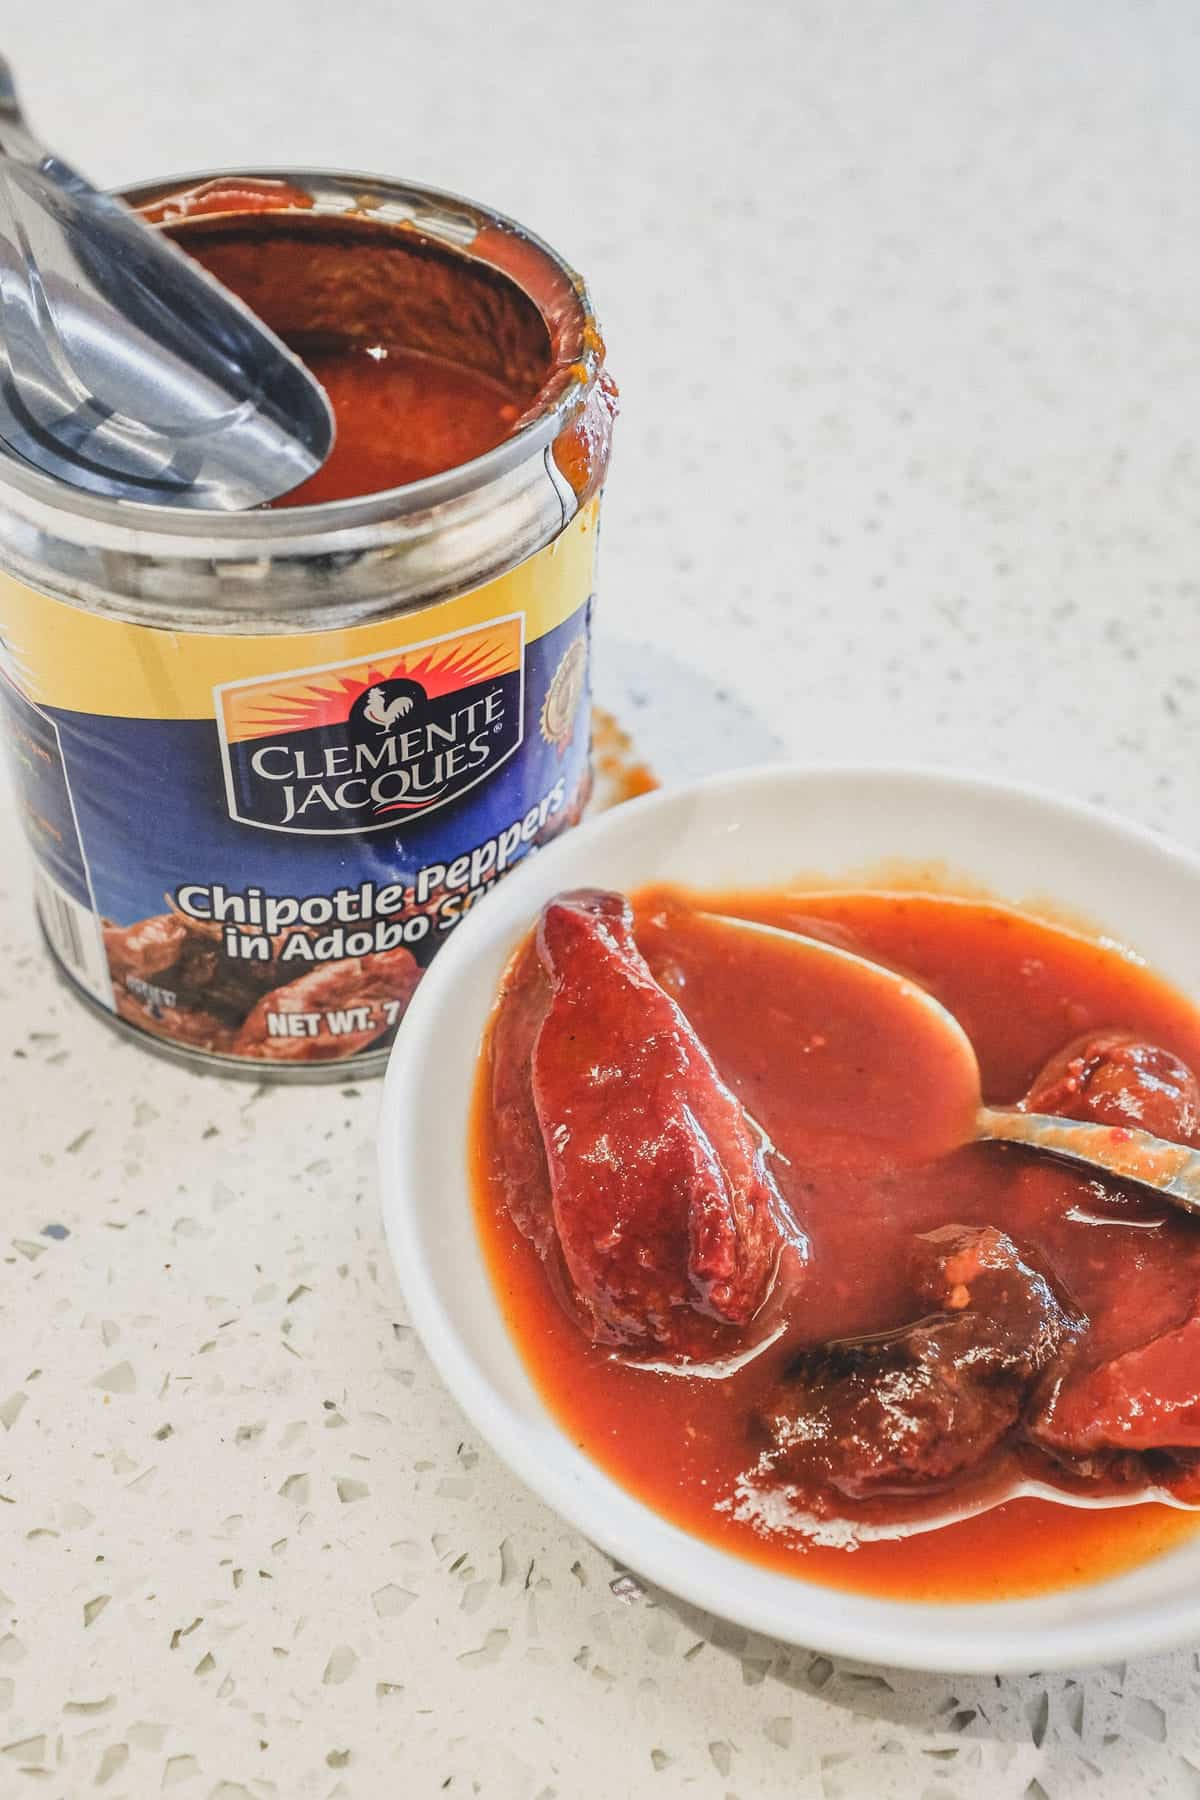 Chipotle Peppers in Adobo Sauce for my creamy chipotle chicken